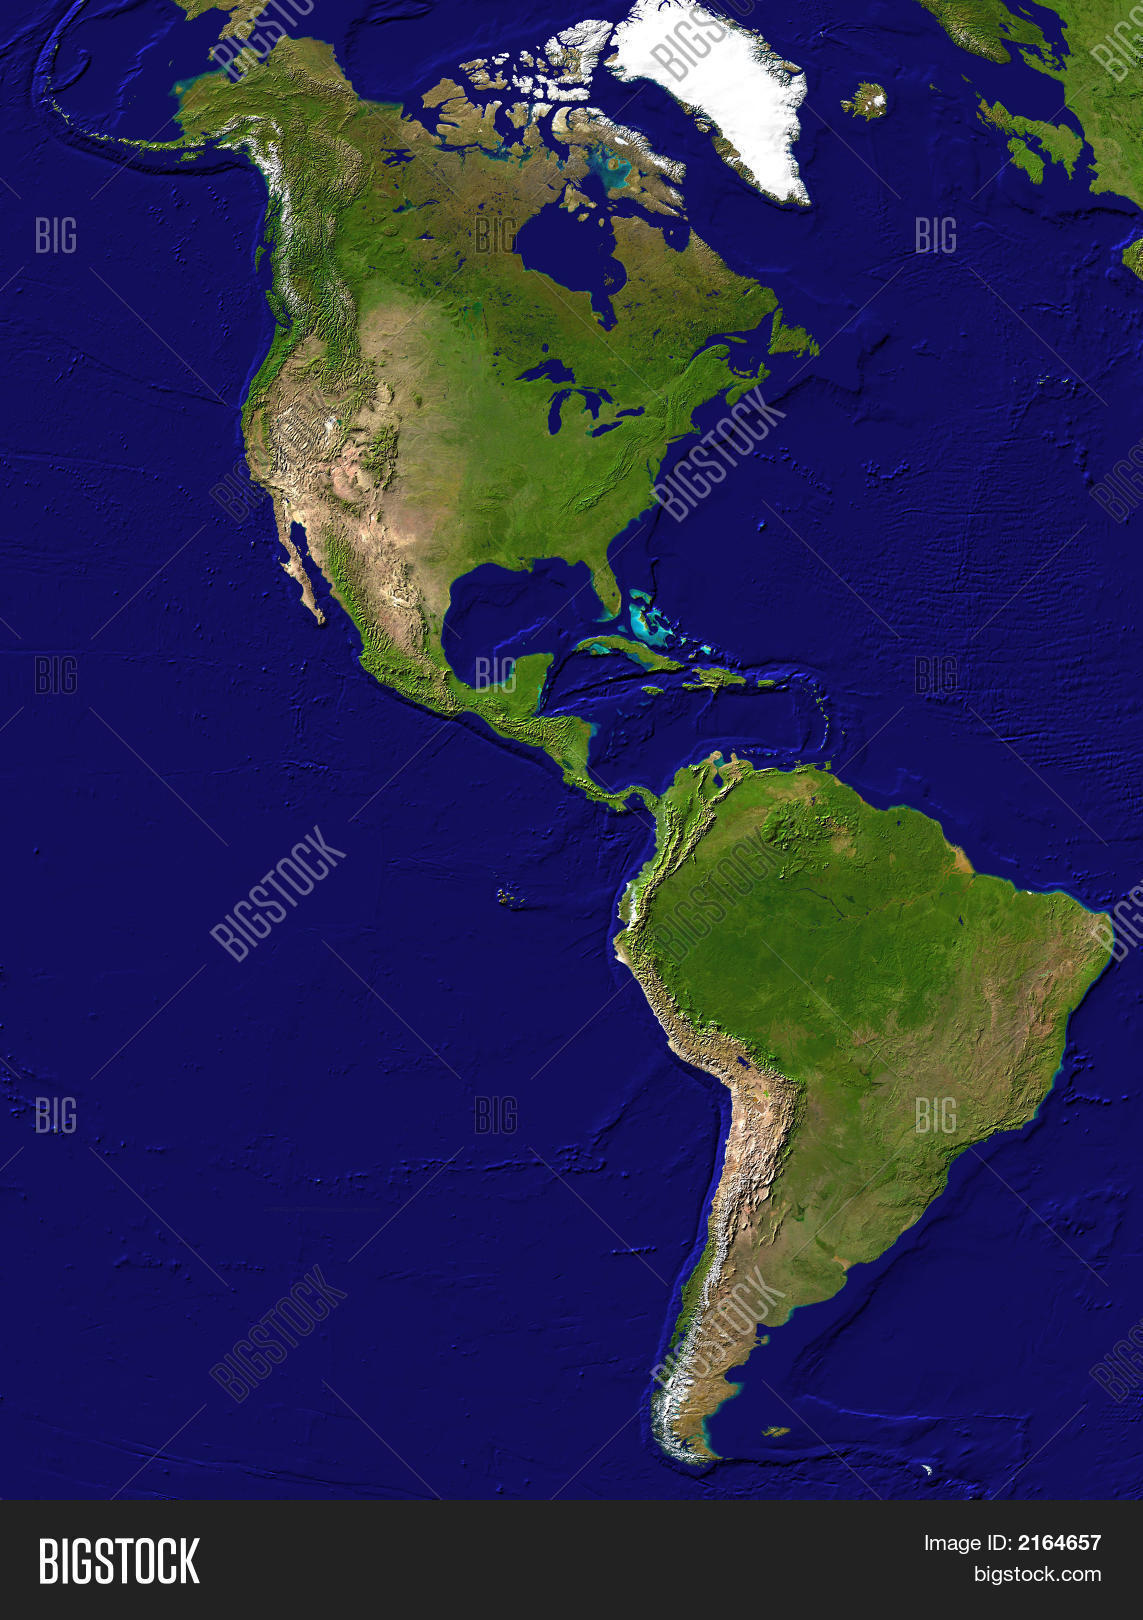 map american continent image